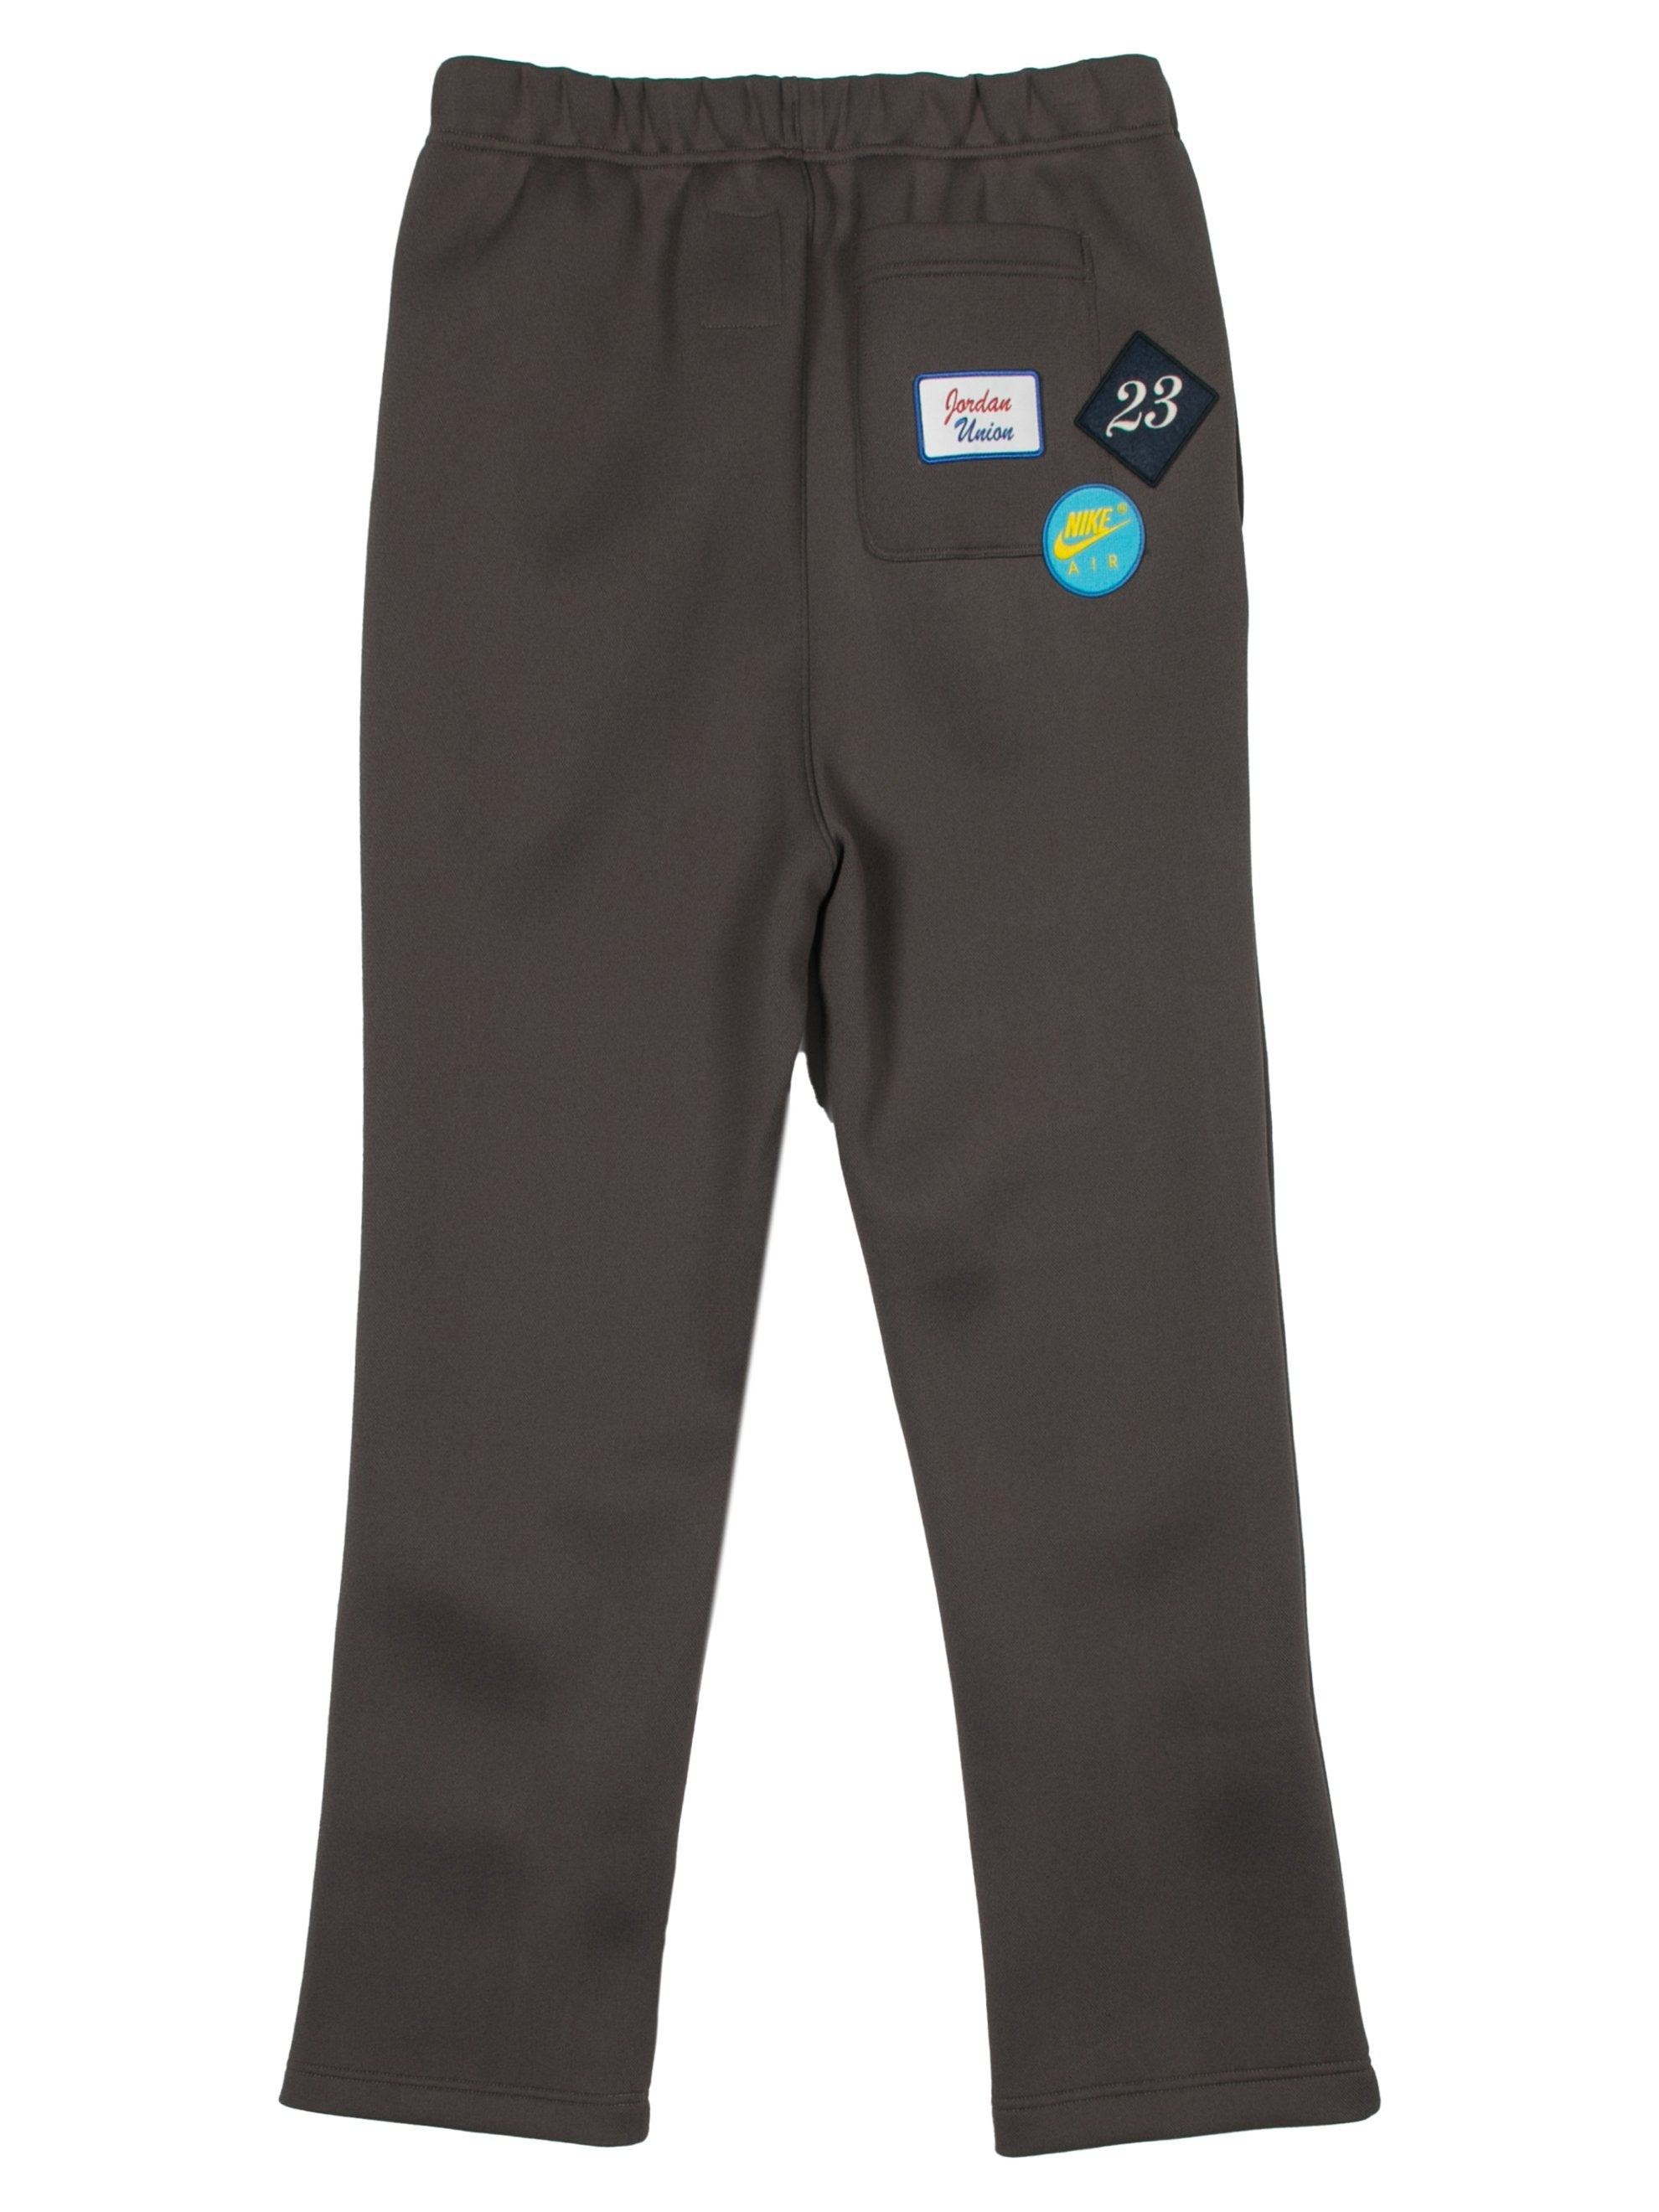 Iron Stone Leisure Trouser 4